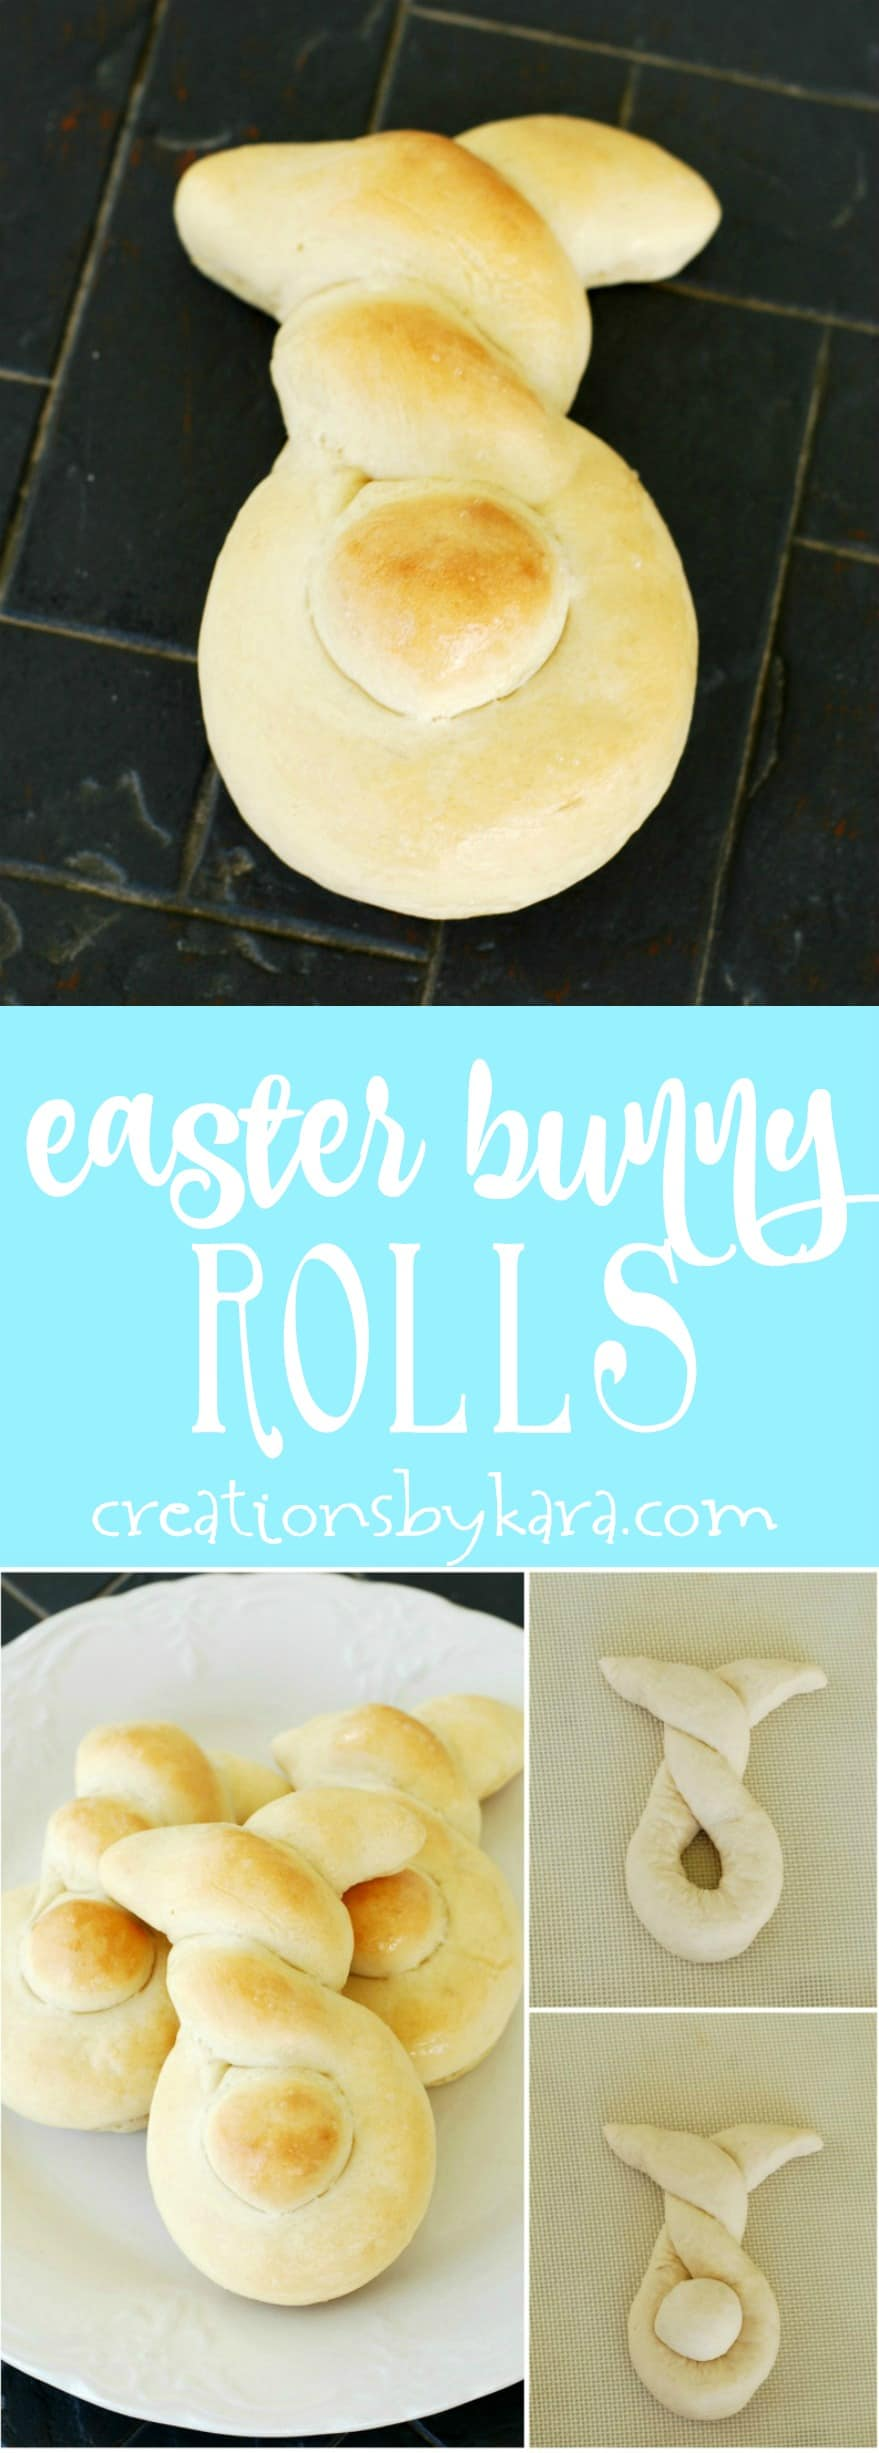 Make Easter dinner more fun with these cute Easter Bunny Rolls. They are perfect for Easter brunch too!